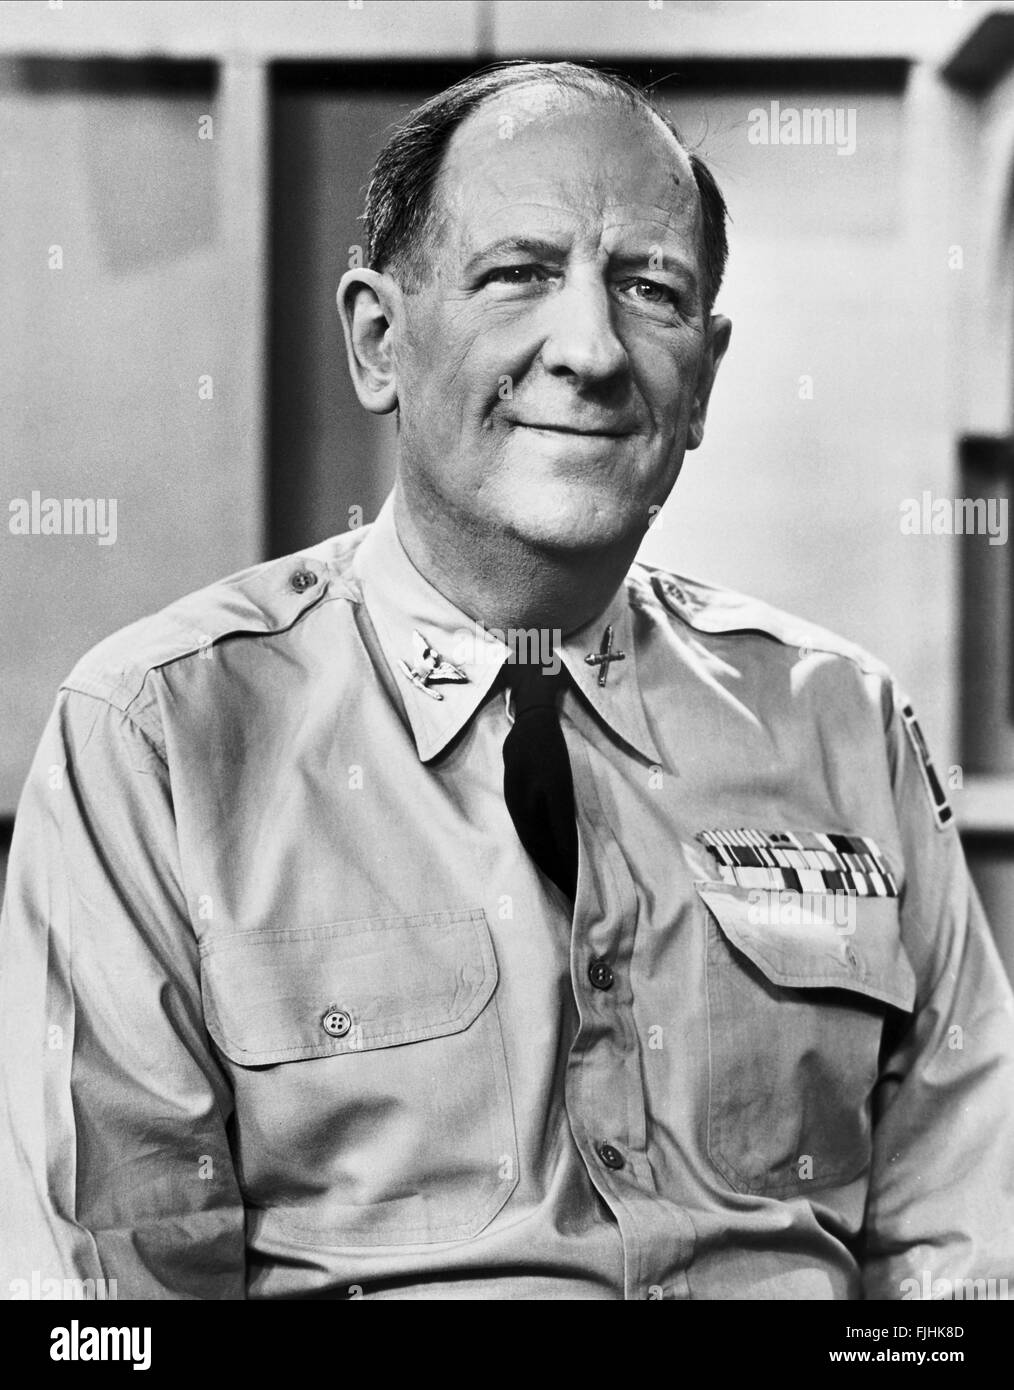 PAUL FORD THE PHIL SILVERS SHOW SERGEANT BILKO 1955 Stock